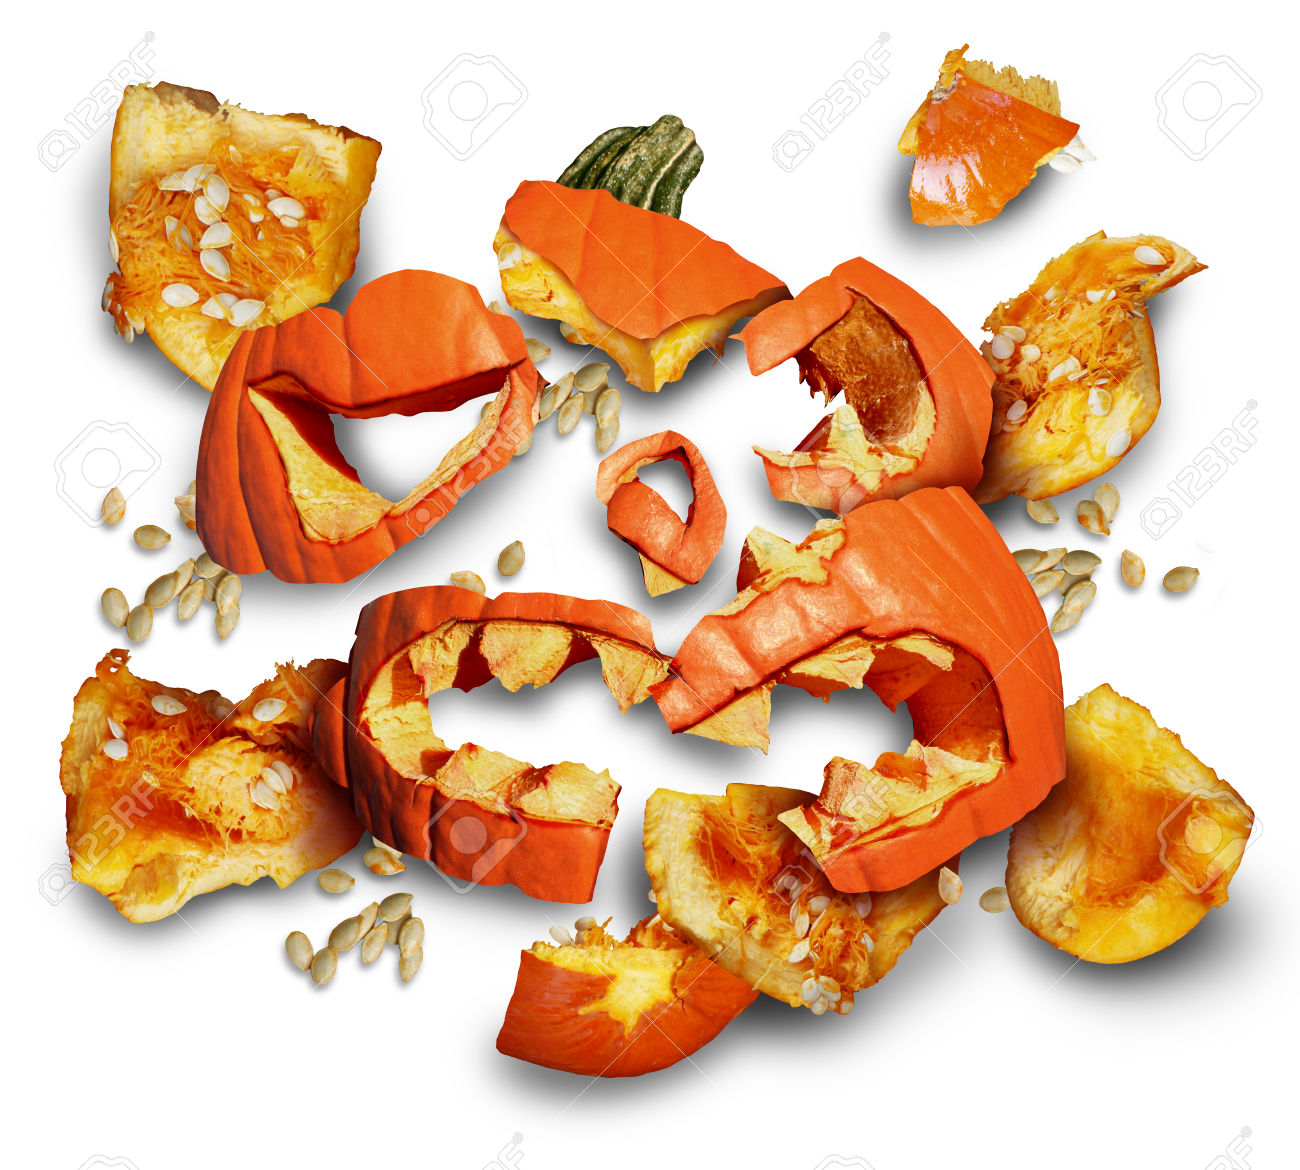 Pumpkin Smashed On A White Background As A Concept And Symbol.